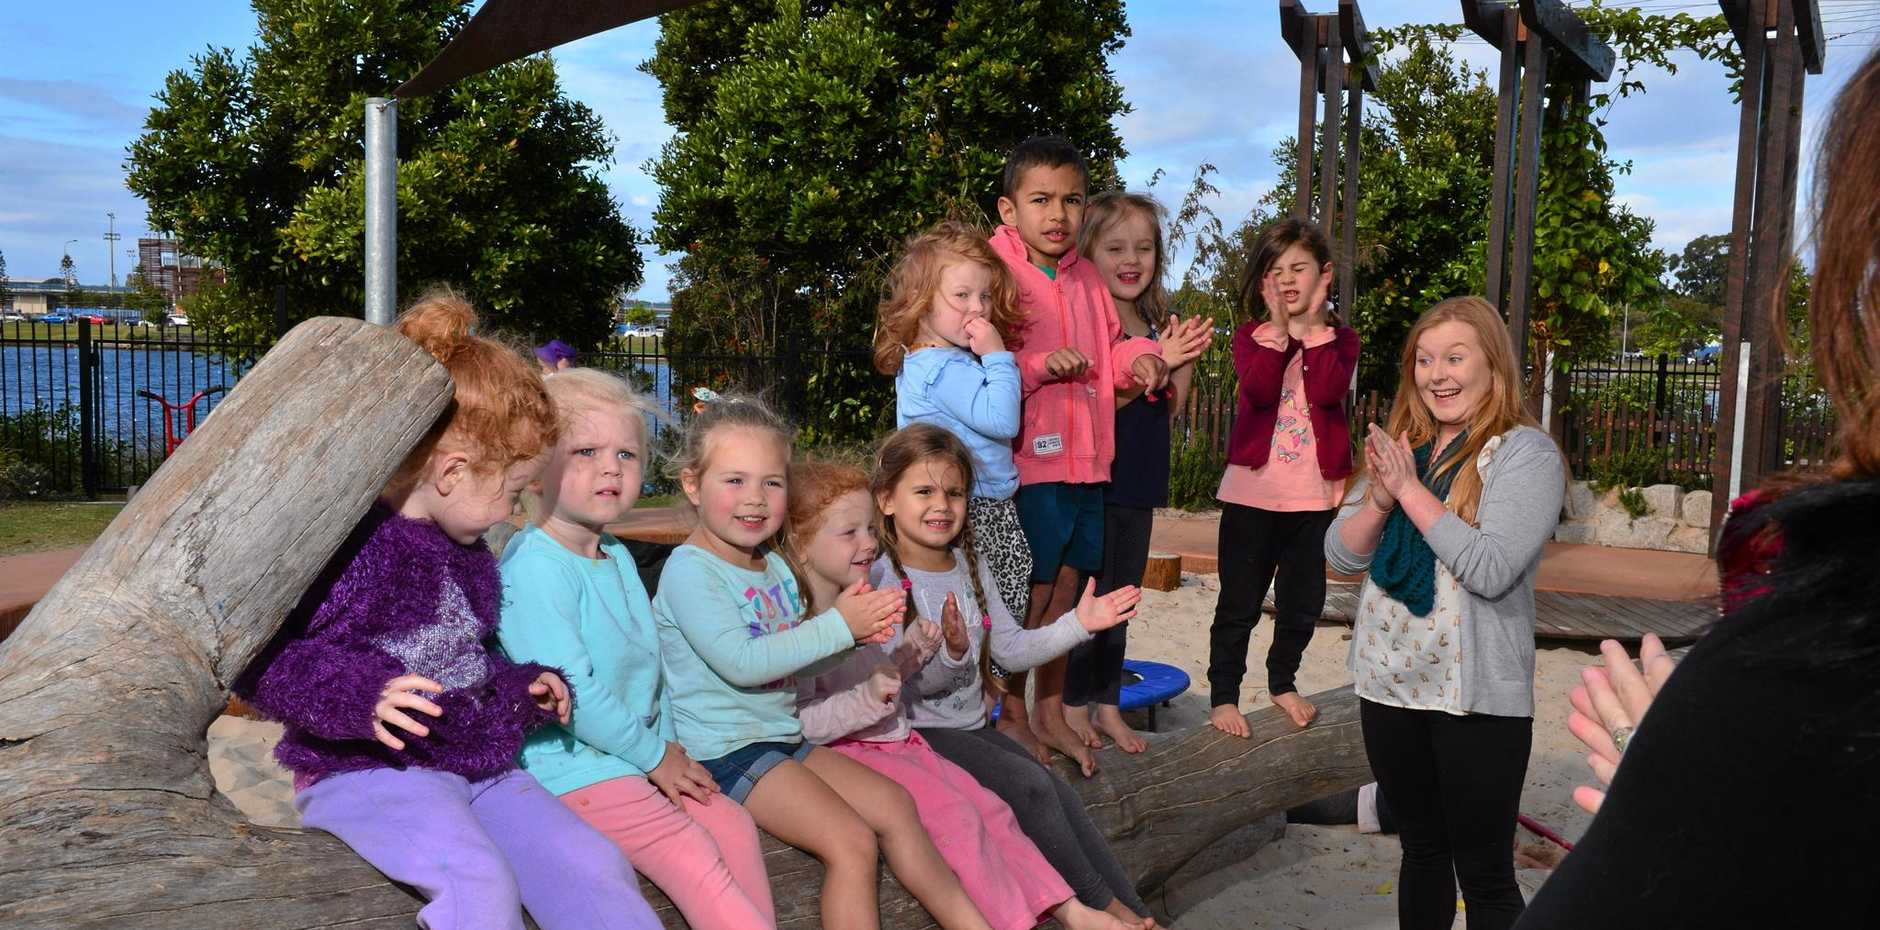 IN DEMAND: Green Beginnings Child Centre teacher Lucy Bauer plays with (from left) Jayda Smith, Everley Walsh, Myla Eacersall, Demmi Smith, Shelby Harrison, Paige Davidson, John Garnsey, Lyla Irvine and Eiliyah Shaich-Yusuf.